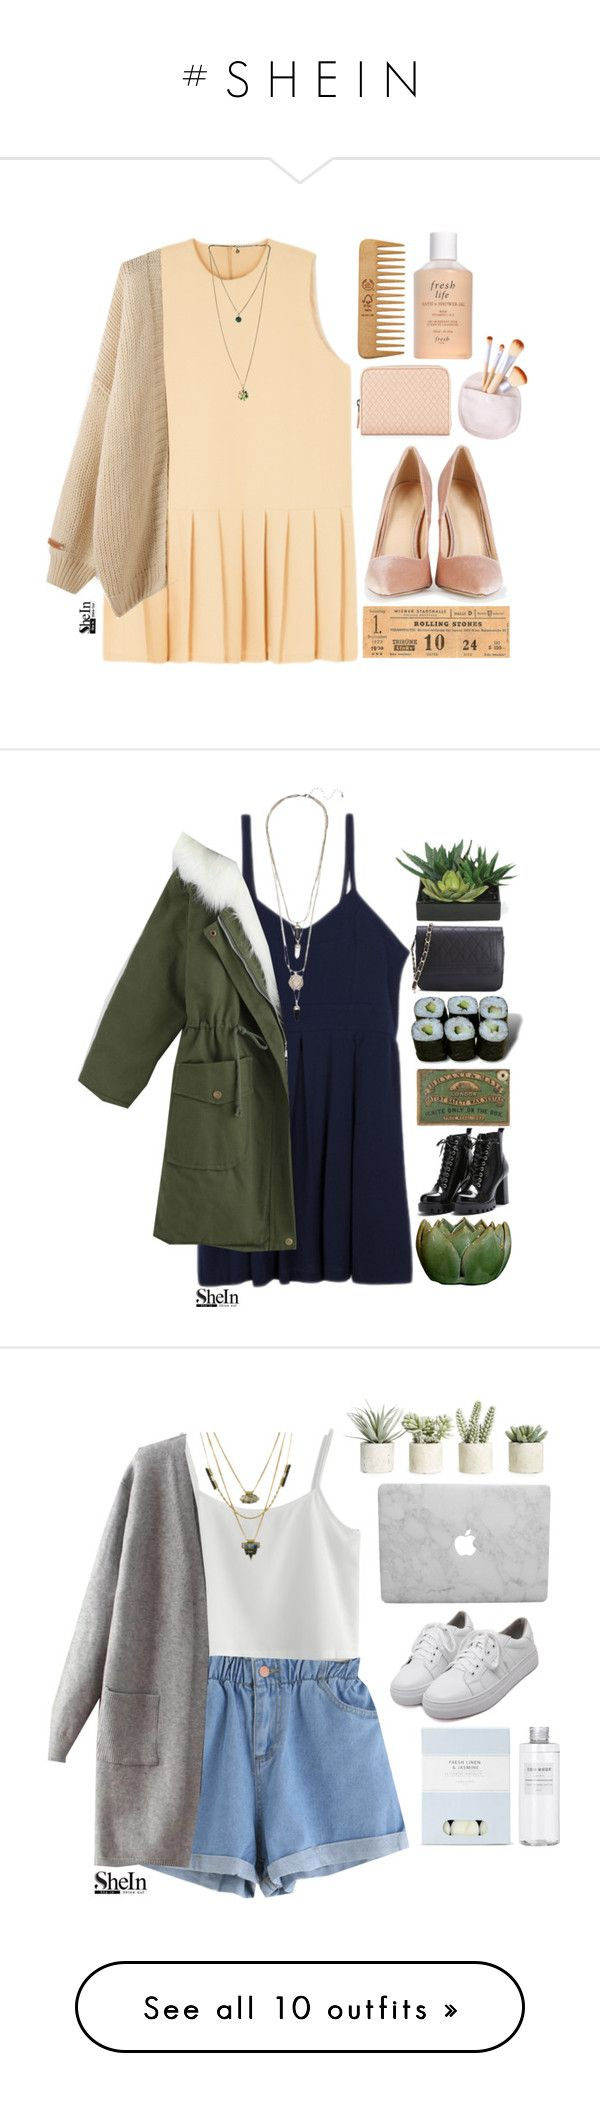 """# S H E I N"" by credentovideos ❤ liked on Polyvore featuring Fresh, Bottega Veneta, The Body Shop, Jura, Lux-Art Silks, Chicwish, Laura Ashley, Allstate Floral, Muji and WithChic"